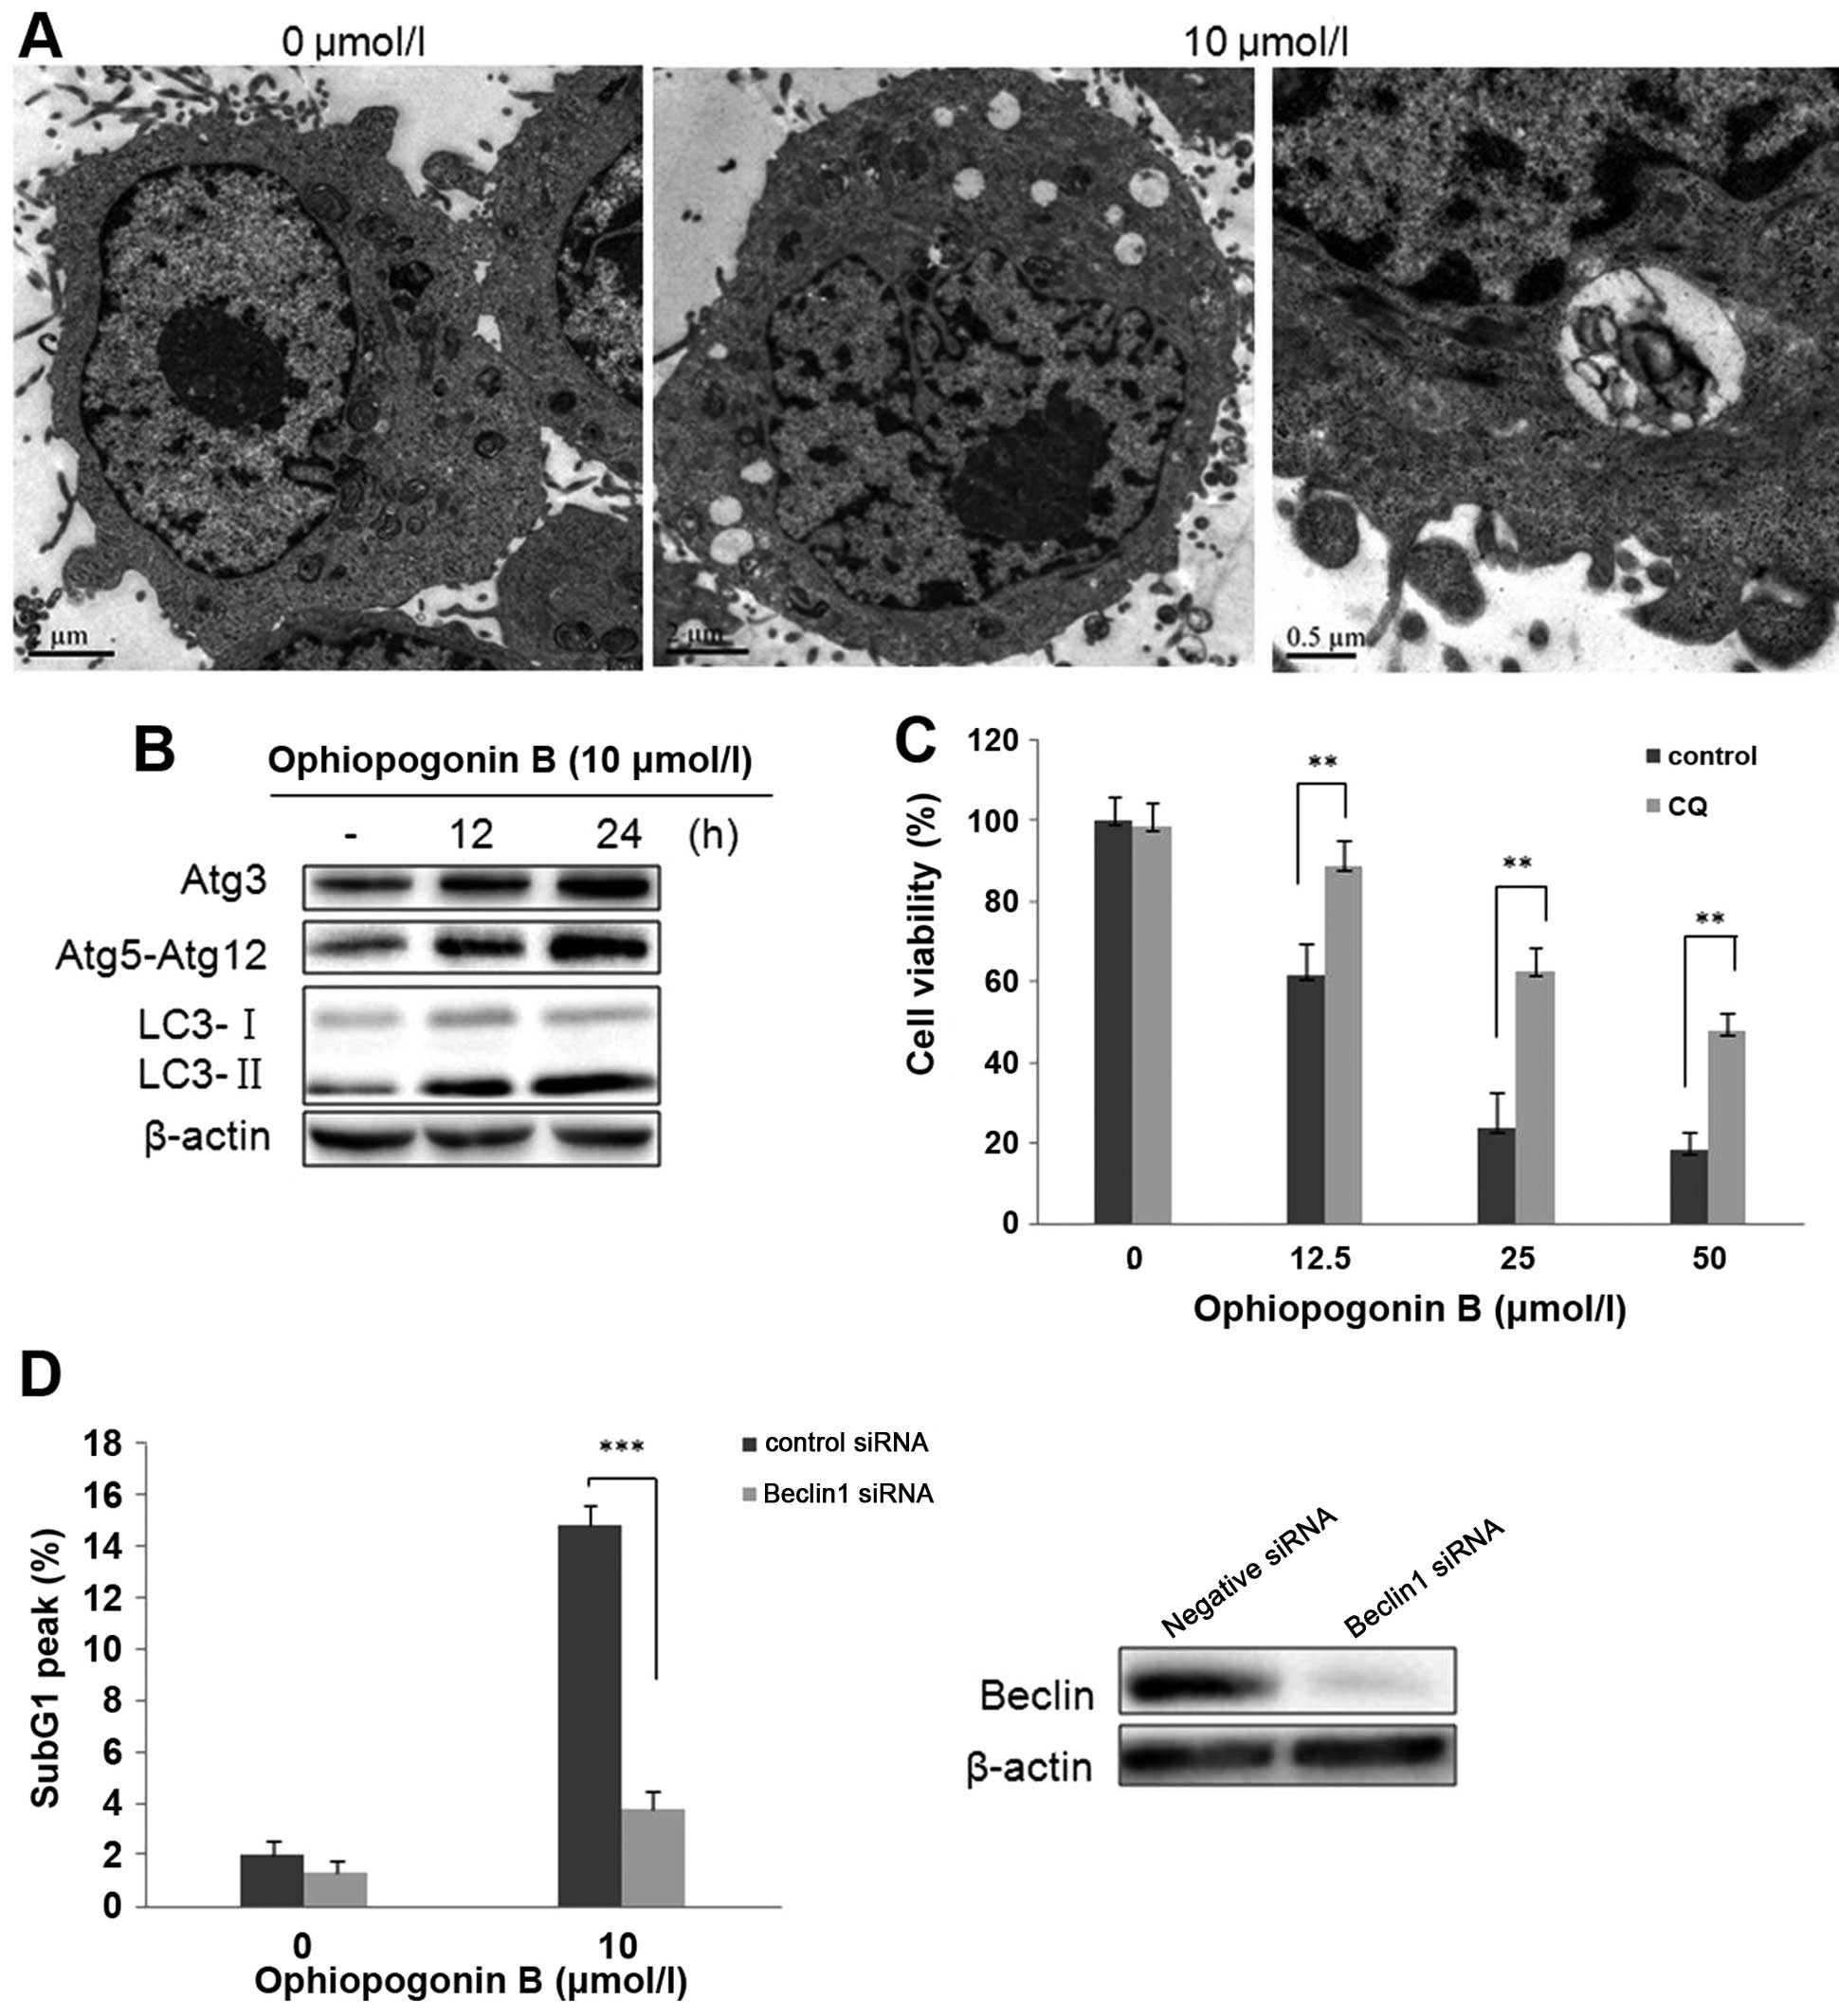 Ophiopogonin B induces apoptosis, mitotic catastrophe and